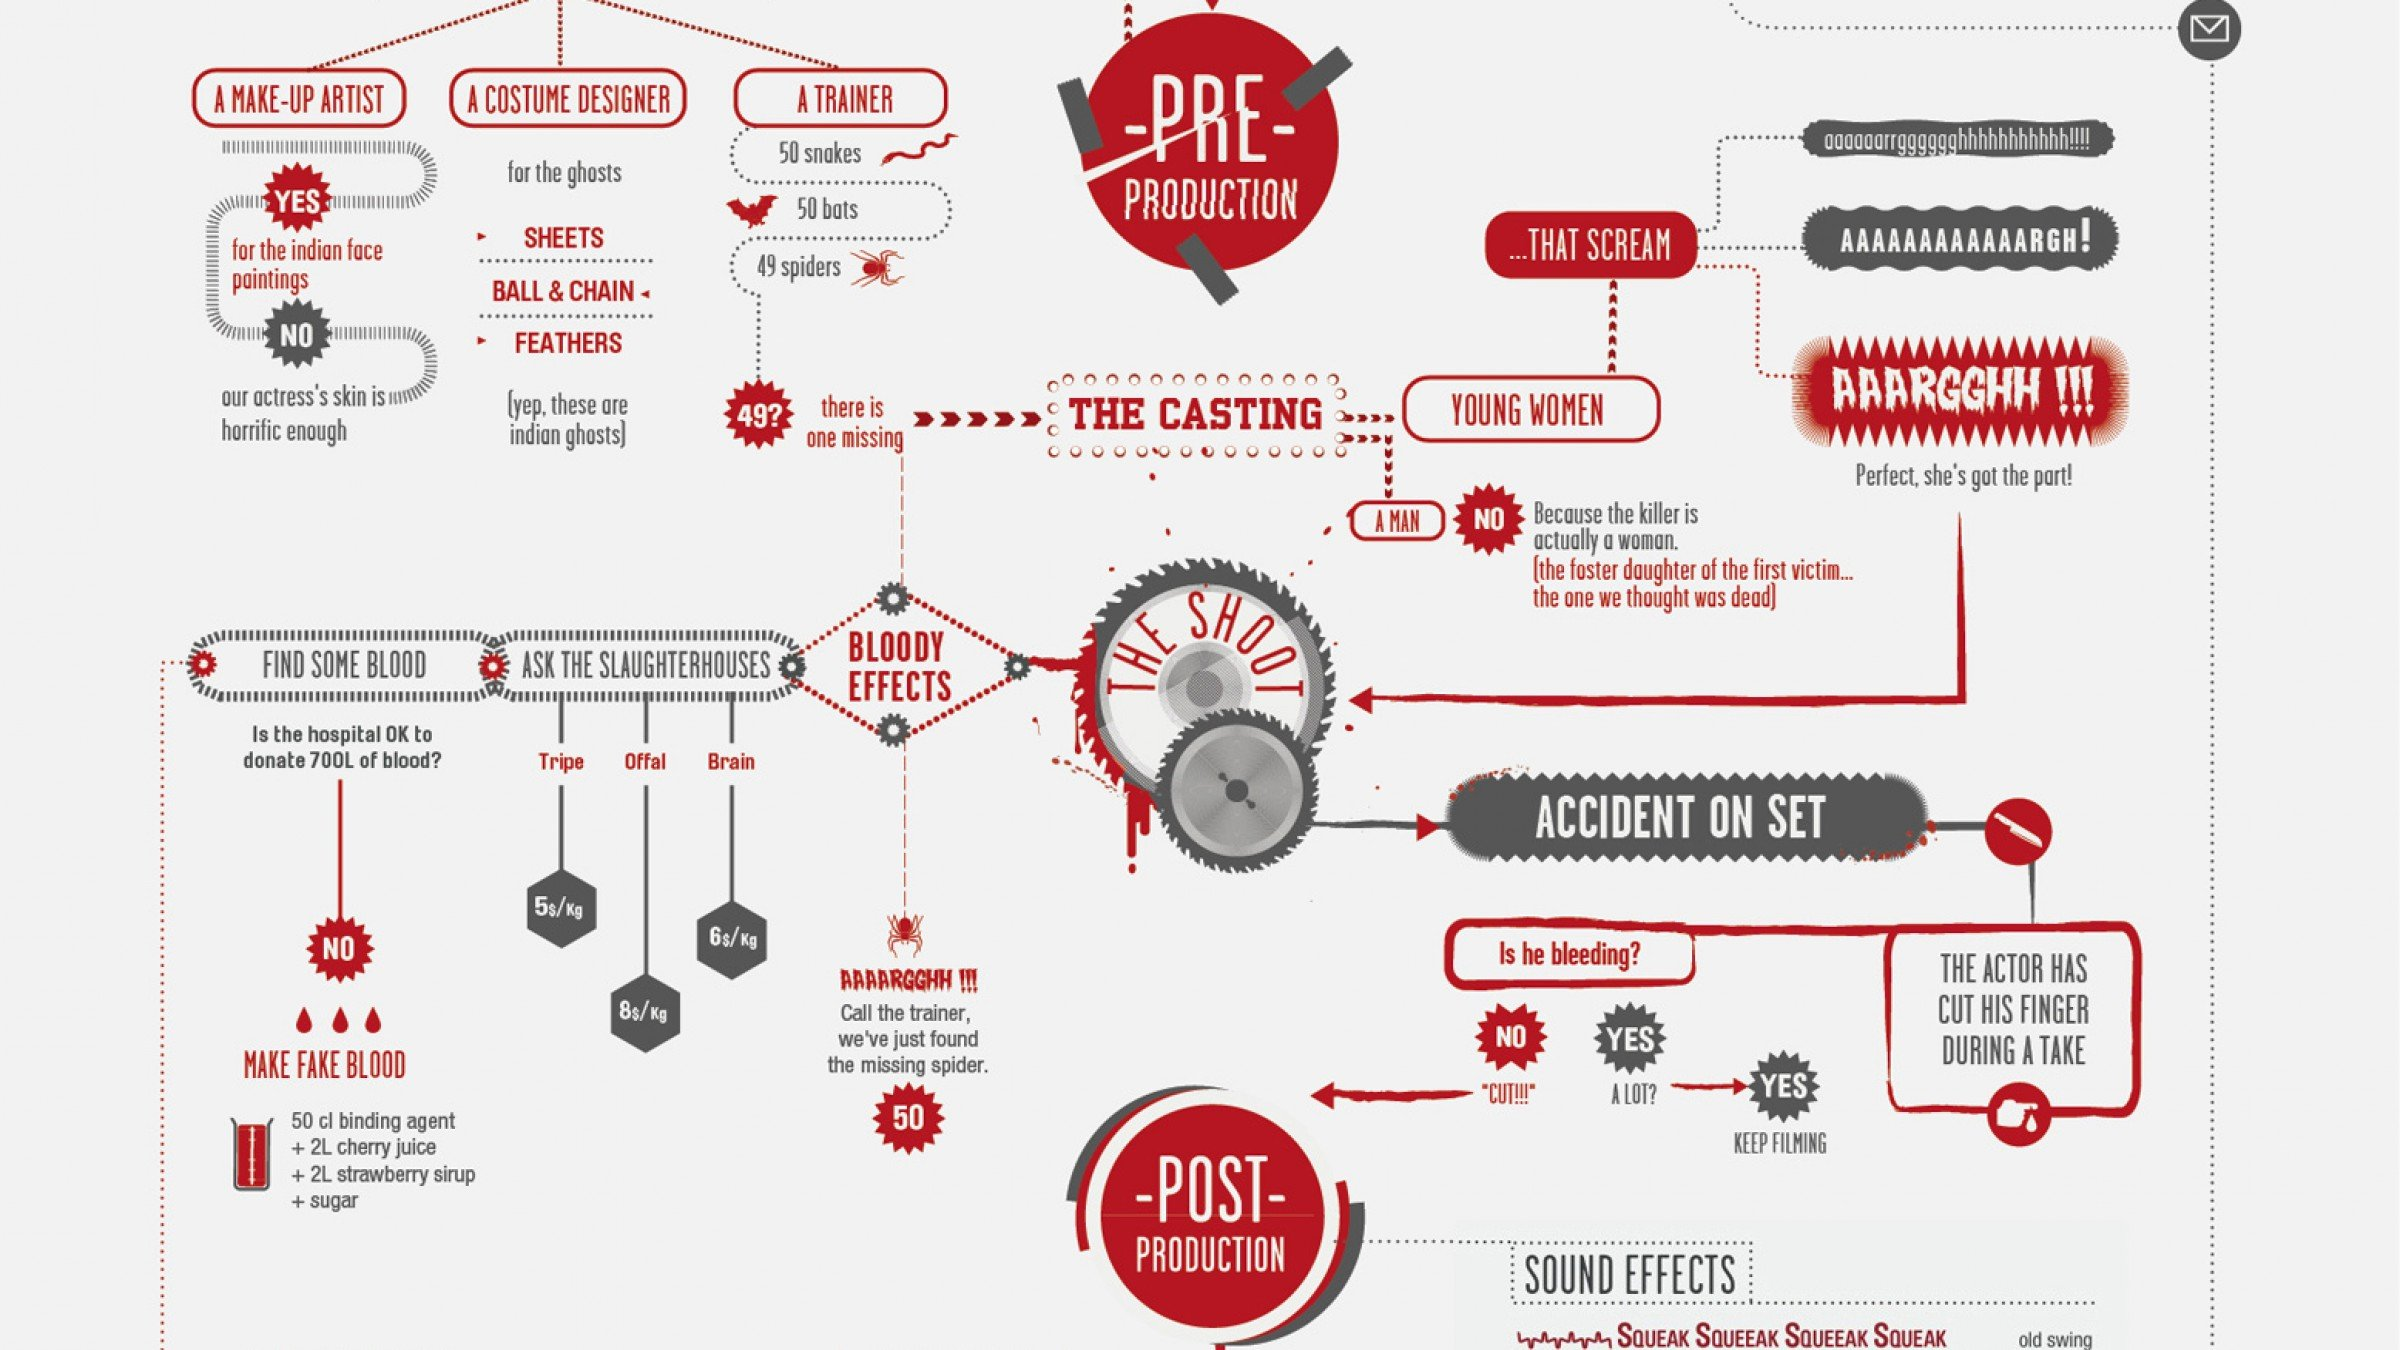 Canal Flow Chart Plus Process Diagram Panama Four Goofy Flowcharts To Guide You Through The Filmmaking 1200x675